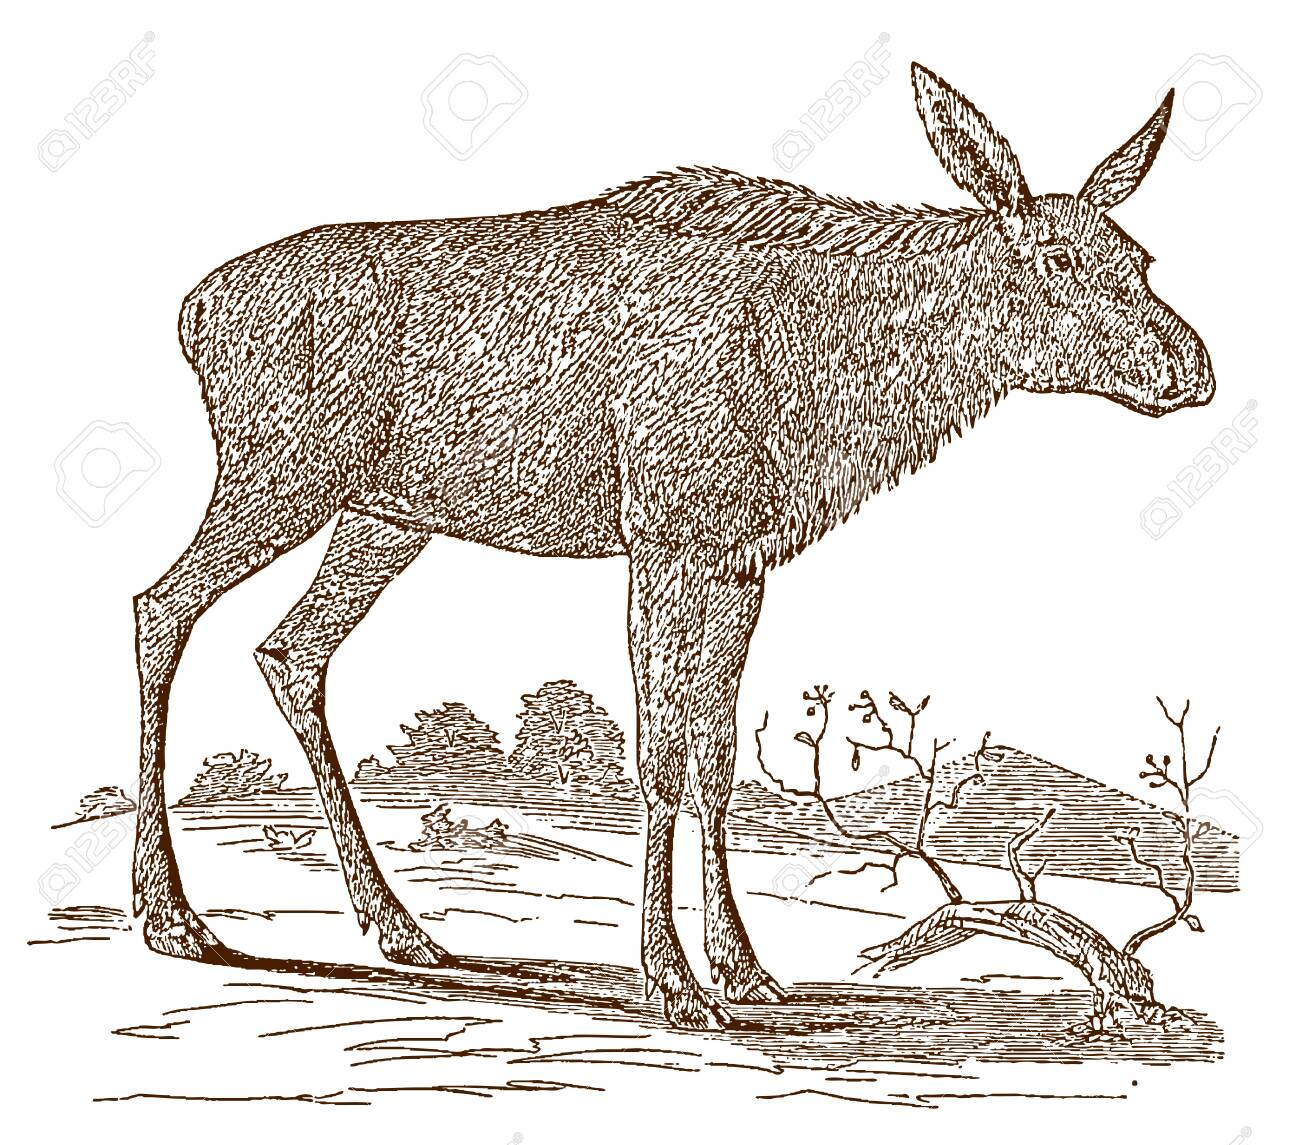 Female moose (alces) cow in side view, standing in a landscape. Illustration after a historic engraving from the 19th century - 128800038